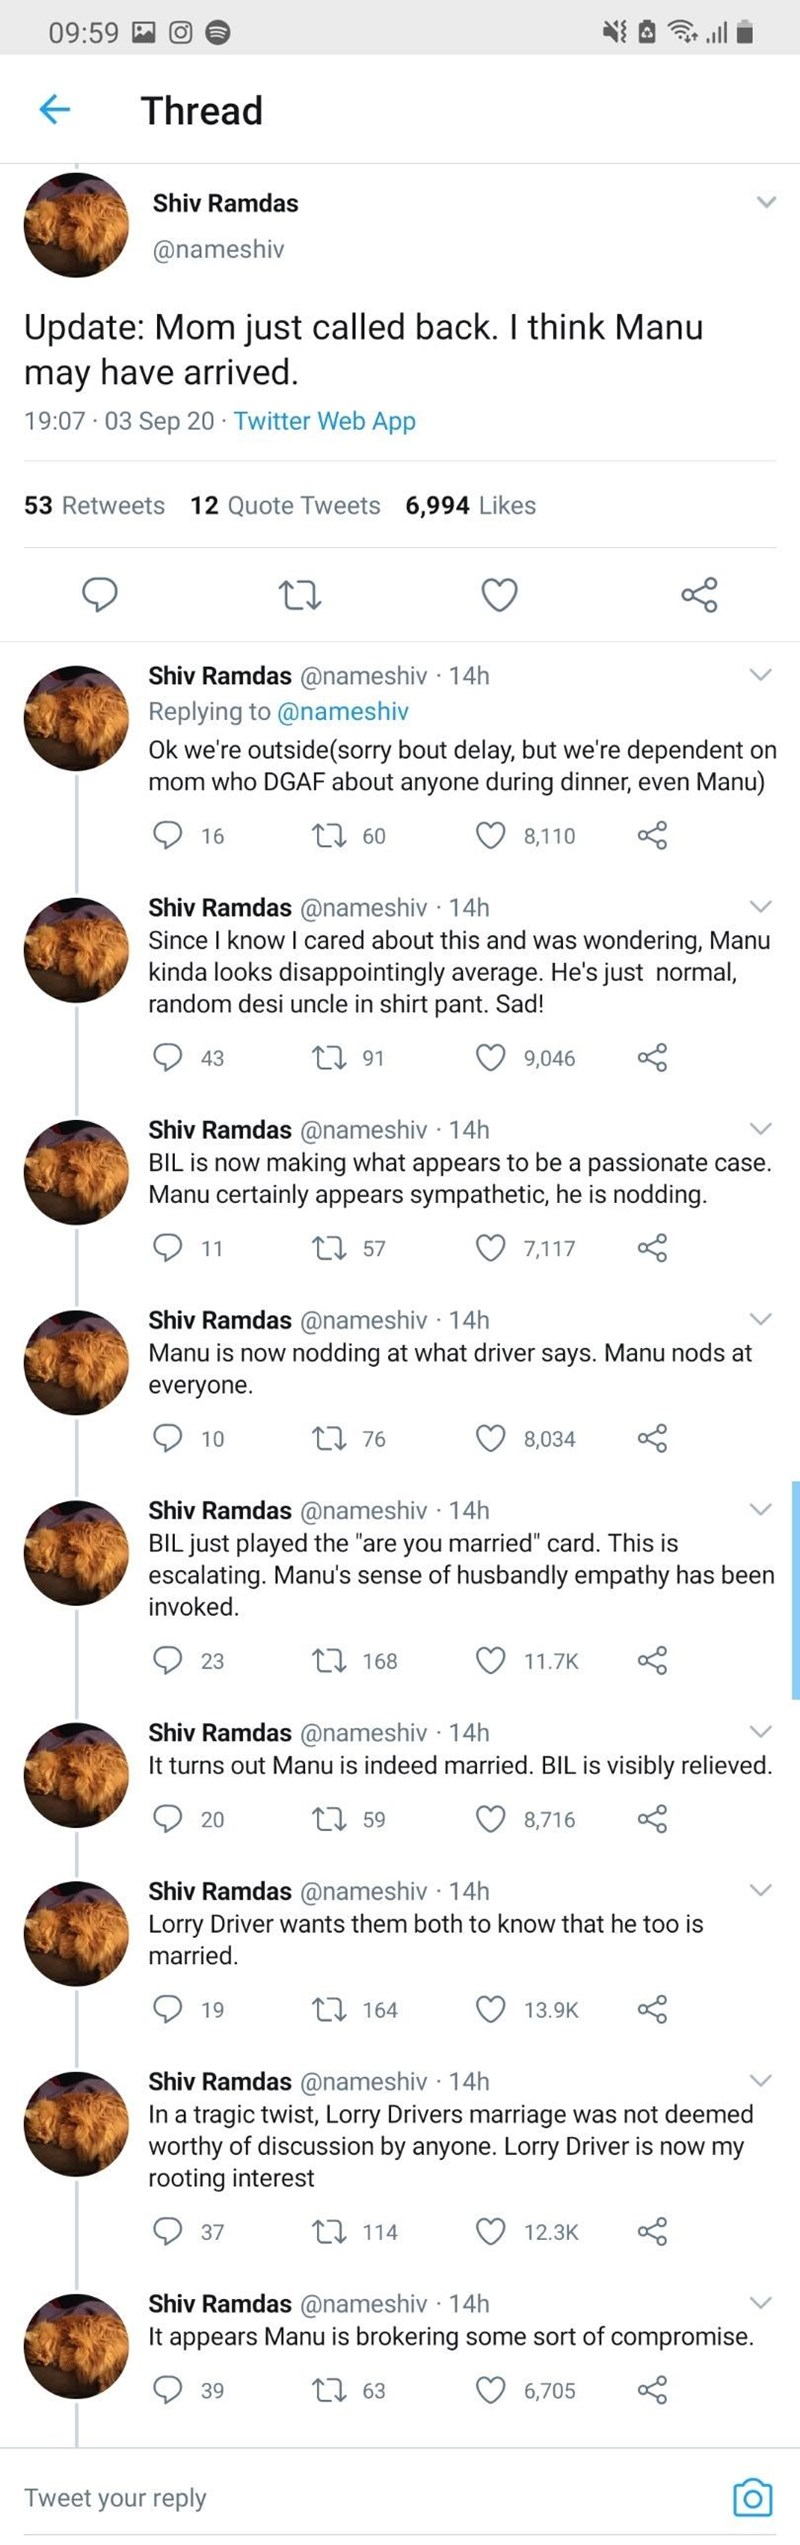 Text - 09:59 四令 Thread Shiv Ramdas @nameshiv Update: Mom just called back. I think Manu may have arrived. 19:07 03 Sep 20 Twitter Web App 53 Retweets 12 Quote Tweets 6,994 Likes Shiv Ramdas @nameshiv · 14h Replying to @nameshiv Ok we're outside(sorry bout delay, but we're dependent on mom who DGAF about anyone during dinner, even Manu) 16 L7 60 8,110 Shiv Ramdas @nameshiv · 14h Since I know I cared about this and was wondering, Manu kinda looks disappointingly average. He's just normal, random d